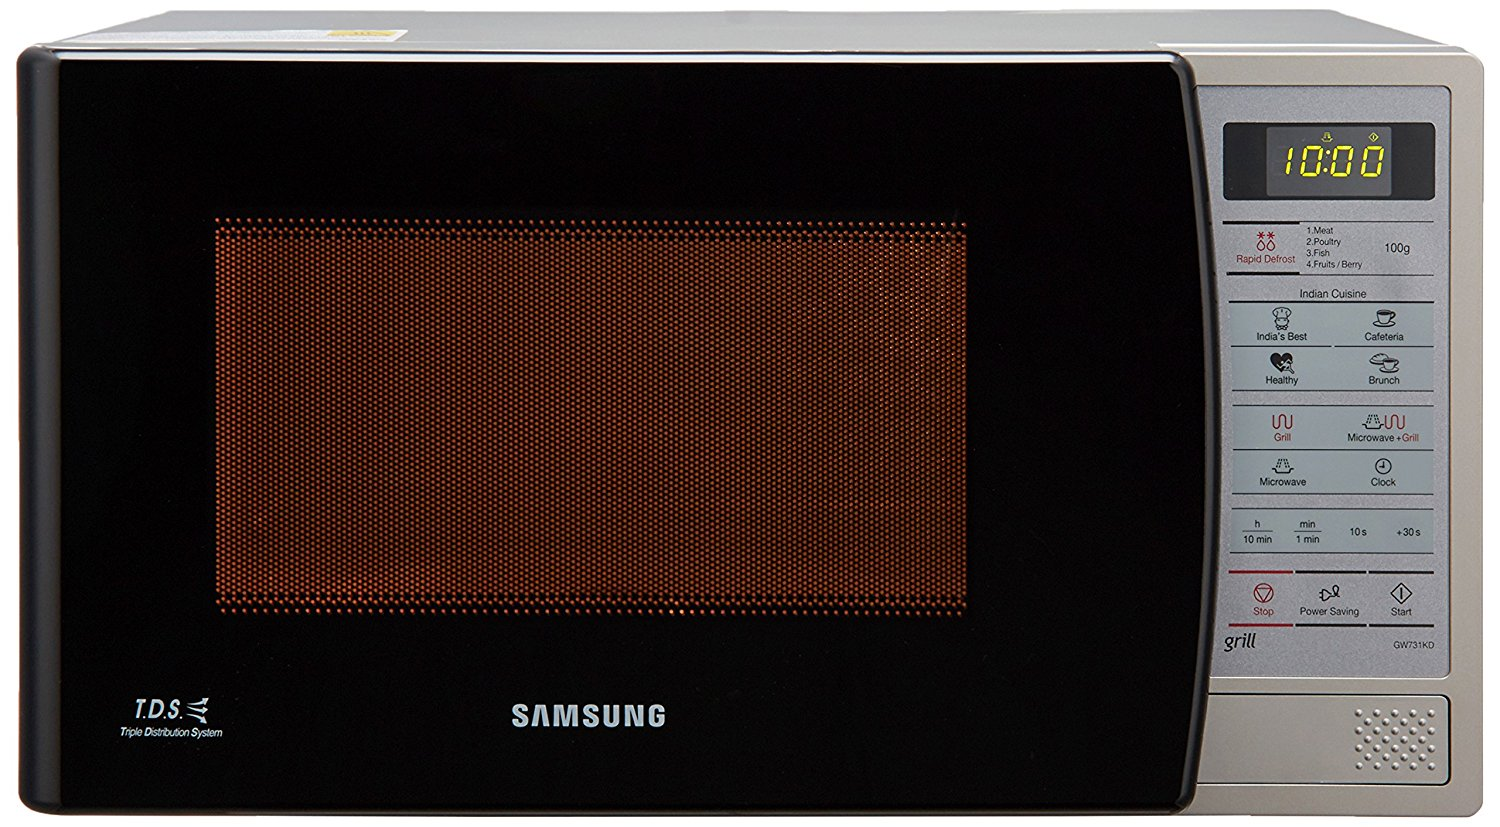 Samsung 20 L Grill Microwave Oven (GW731KD-S/XTL, Black)